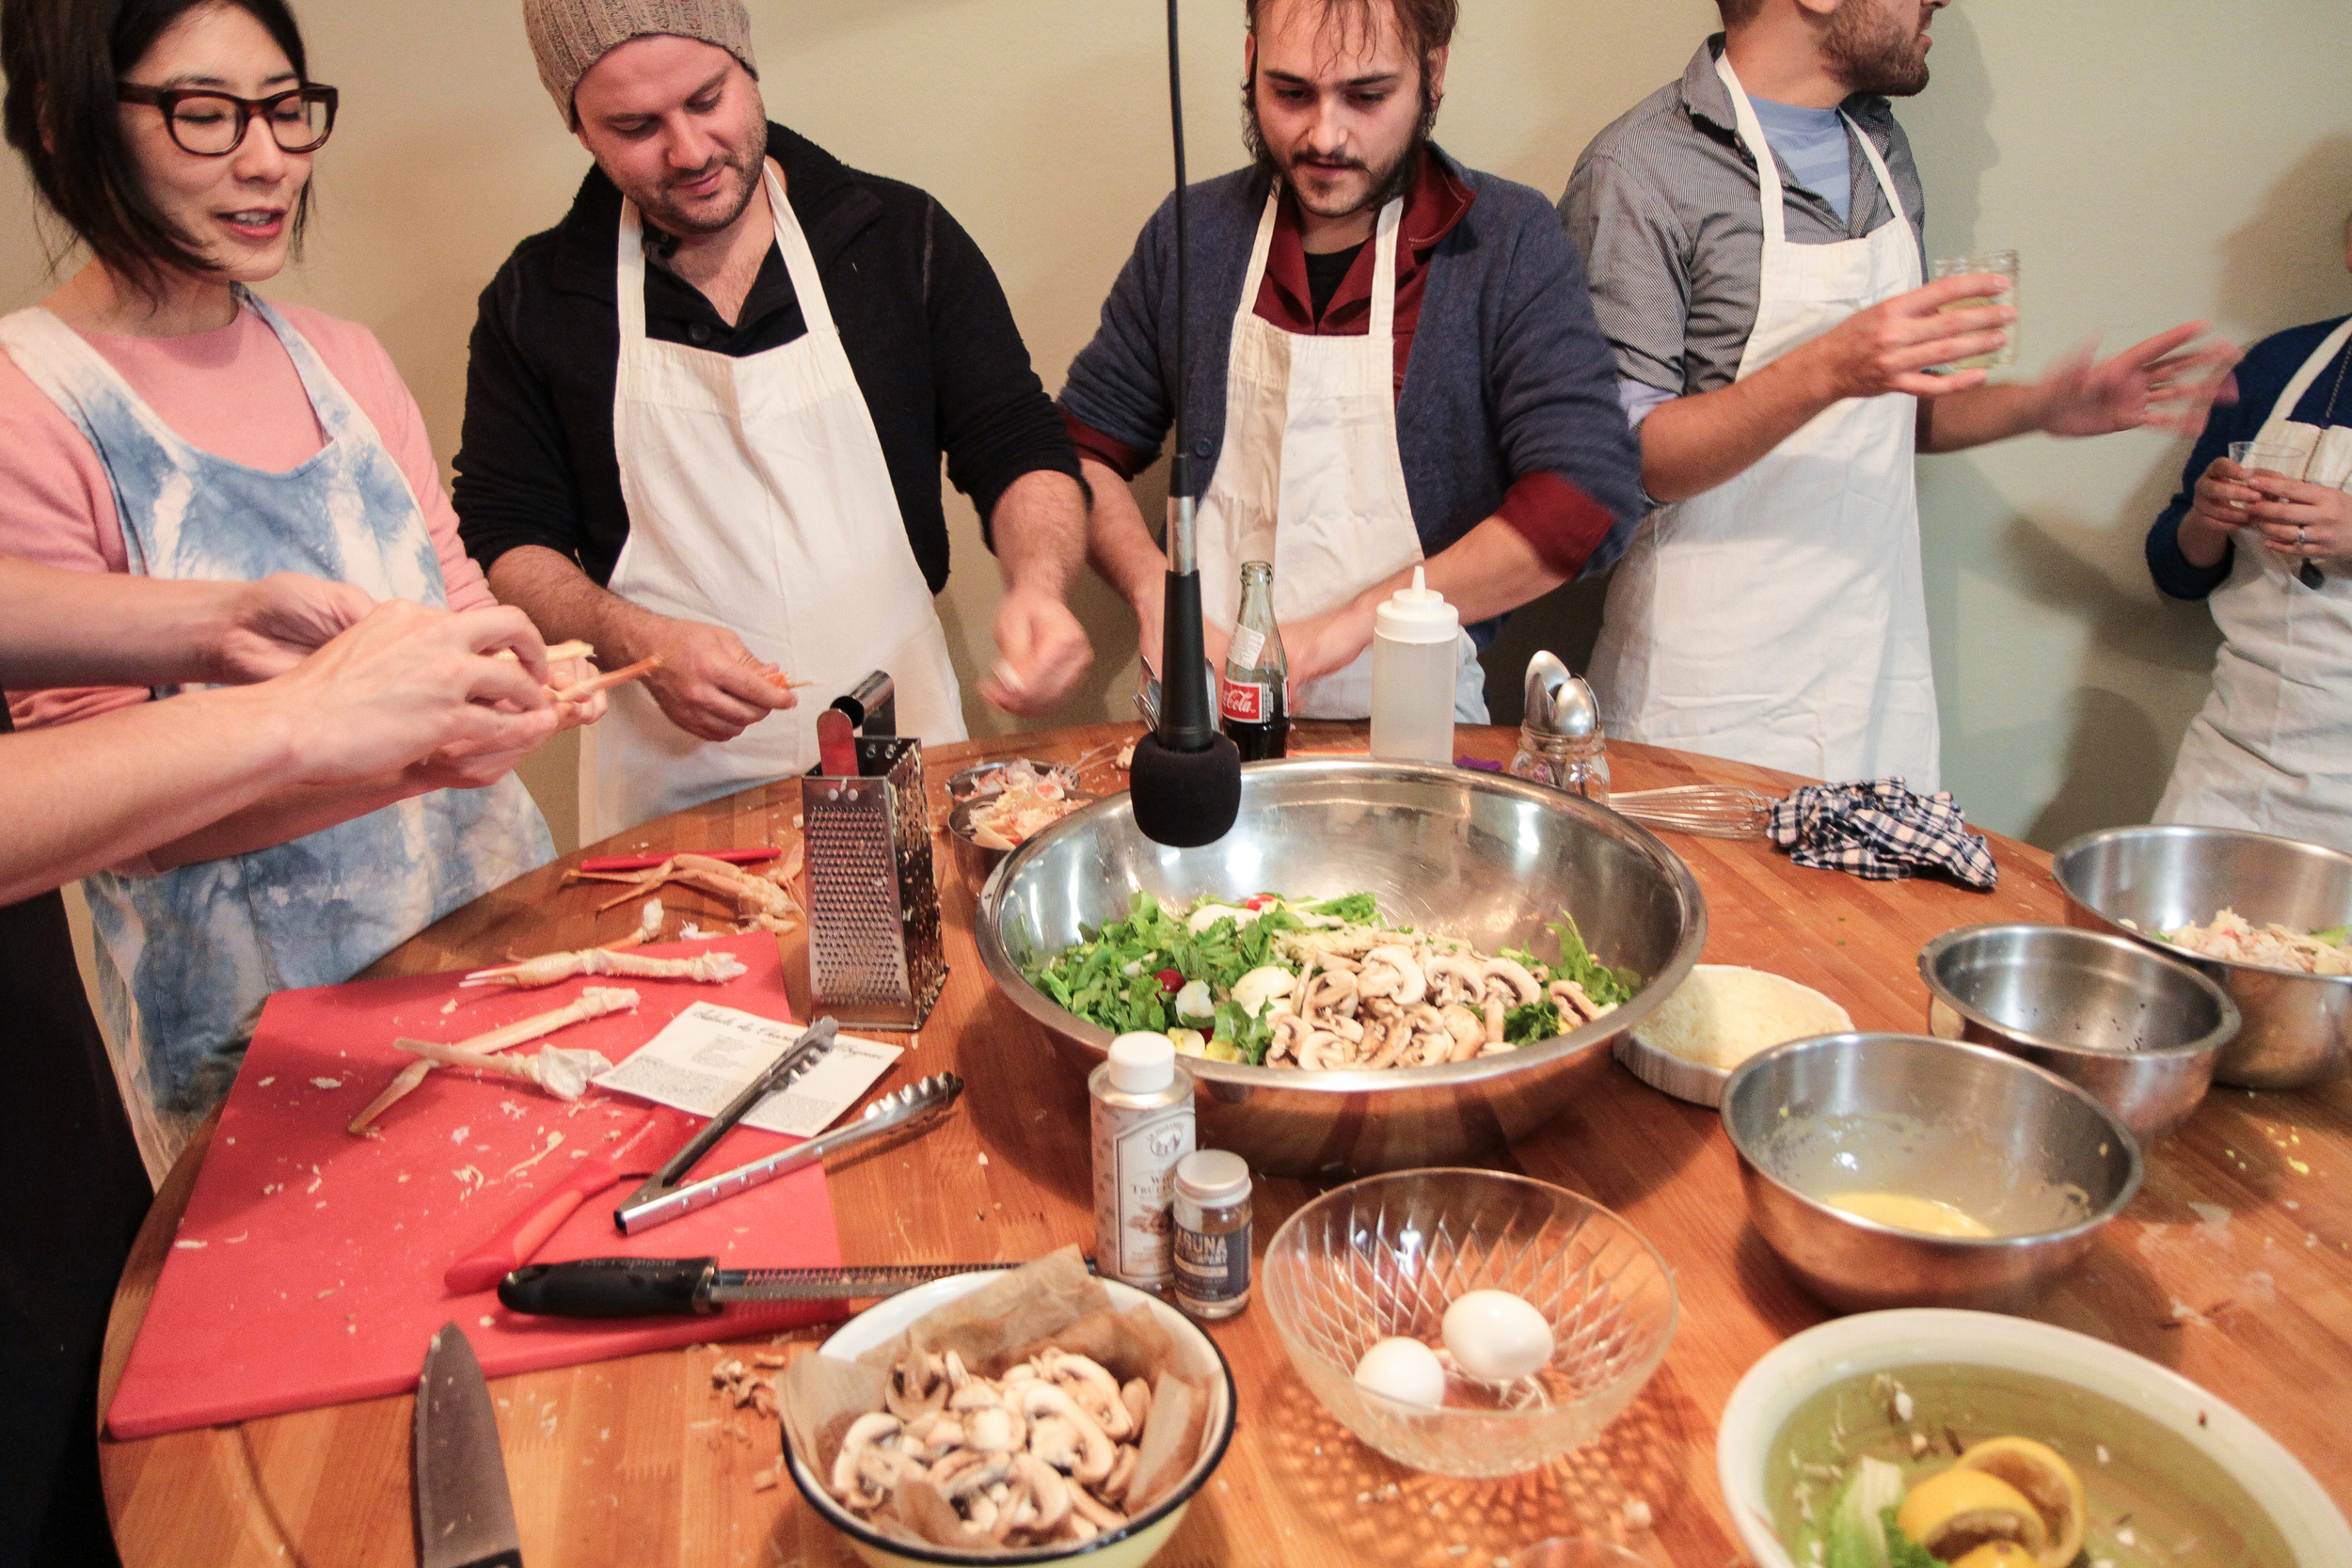 Salade du Chevalier d'Albignac  2015 Interactive performance December 12th, 2015, Thank You For Coming, Los Angeles, CA